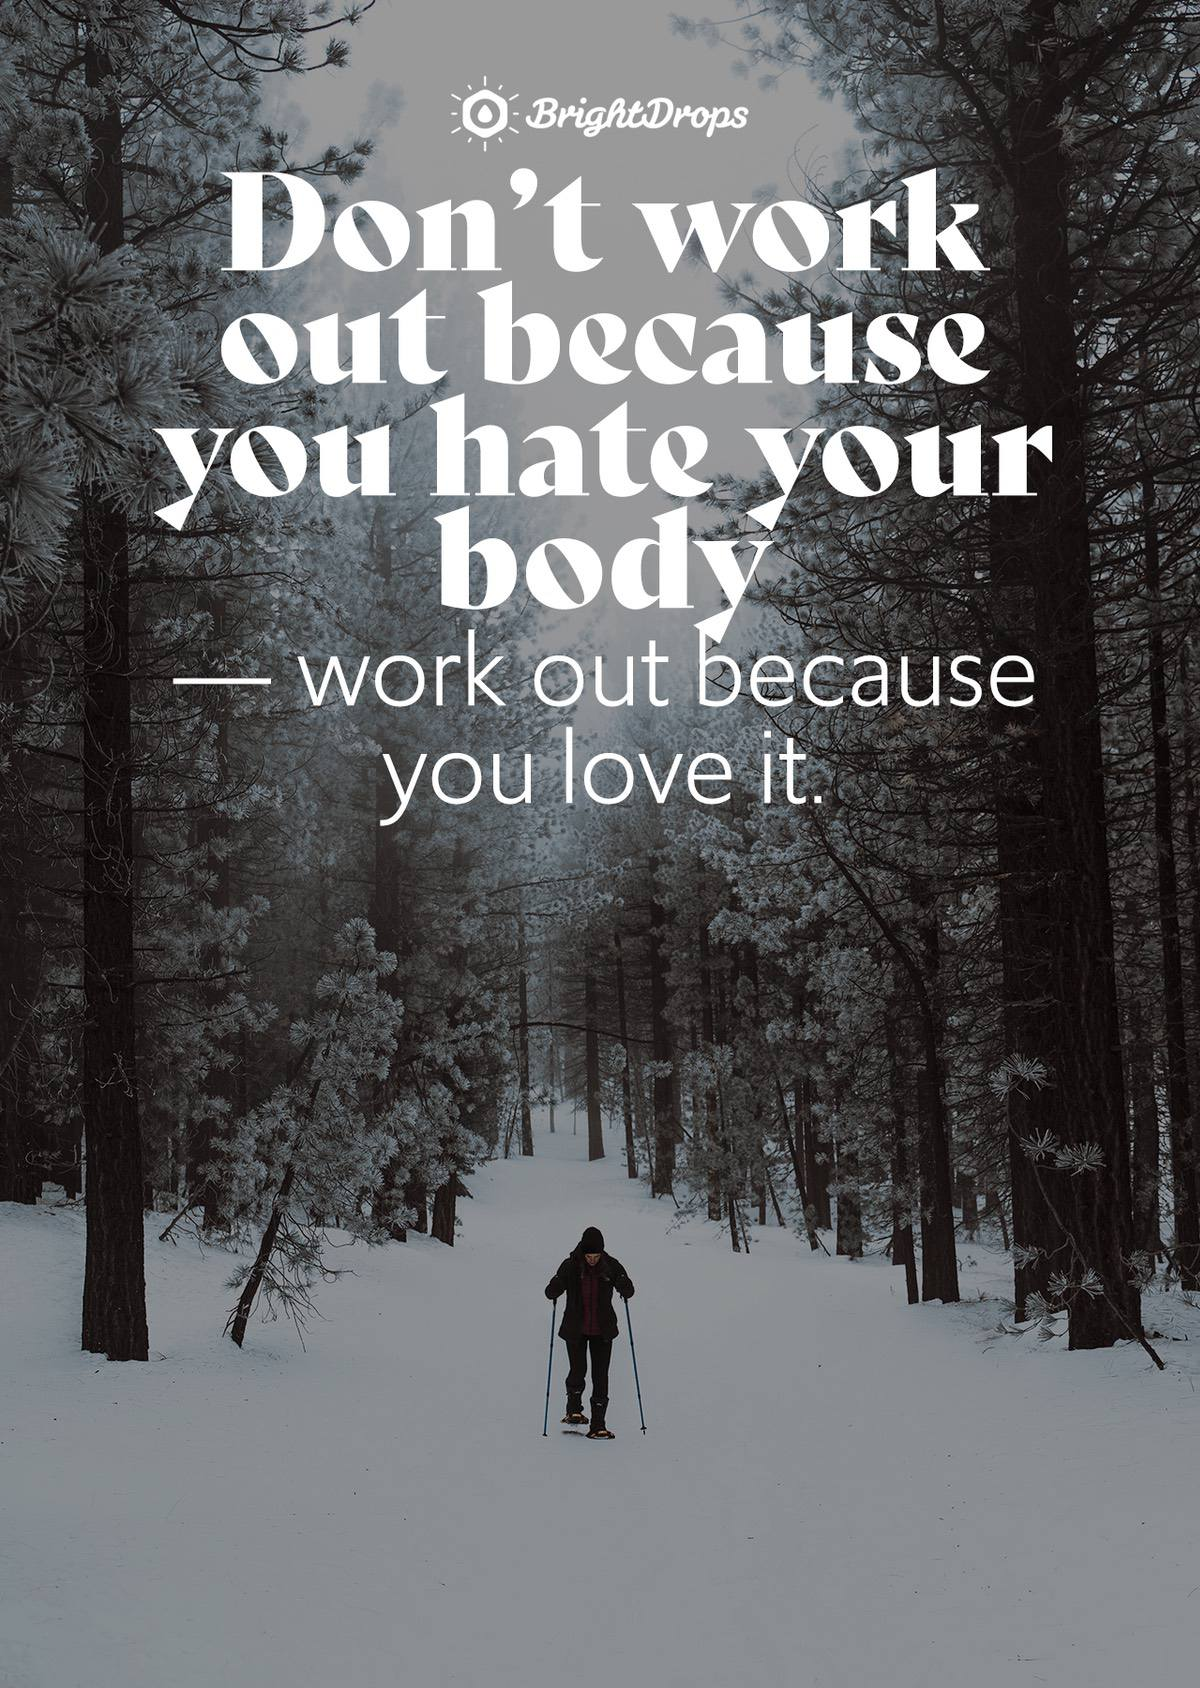 Don't work out because you hate your body — work out because you love it. - Unknown